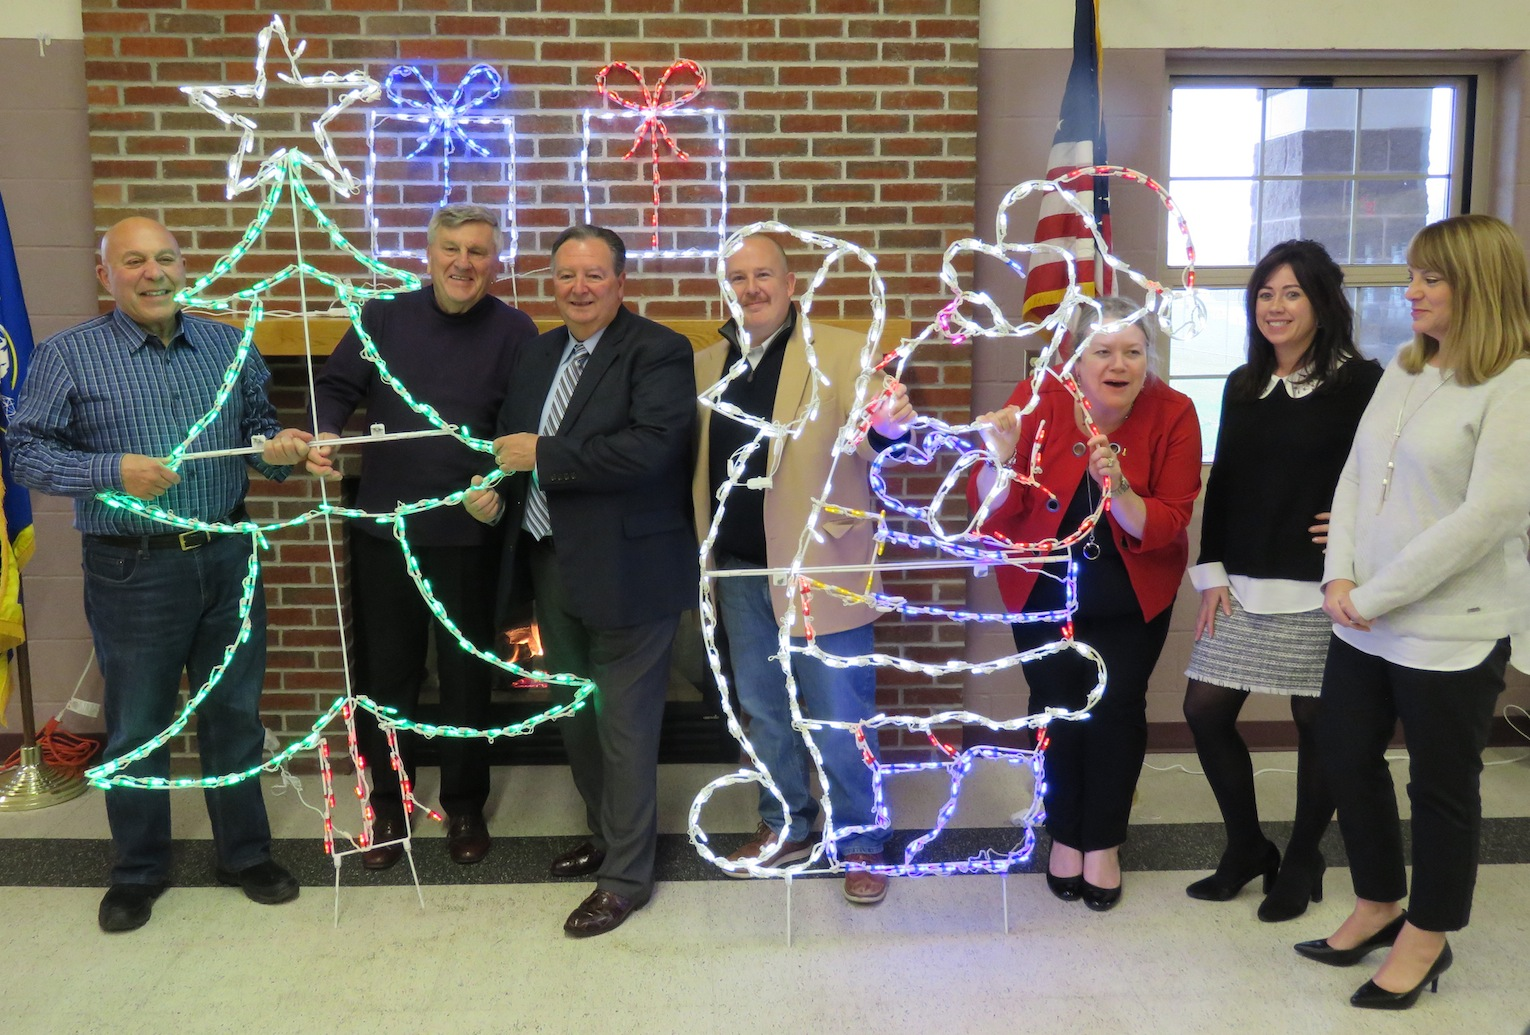 From left, Assemblyman Angelo Morinello, Jerry Wolfgang, Town of Niagara Supervisor Lee Wallace, Chris Woods, Janiene Ennis-Garcia, Meghan Ayers and Suzanne Kennedy pose with some of the lighting displays for this year's `Noel at Niagara.` (Photo by David Yarger)